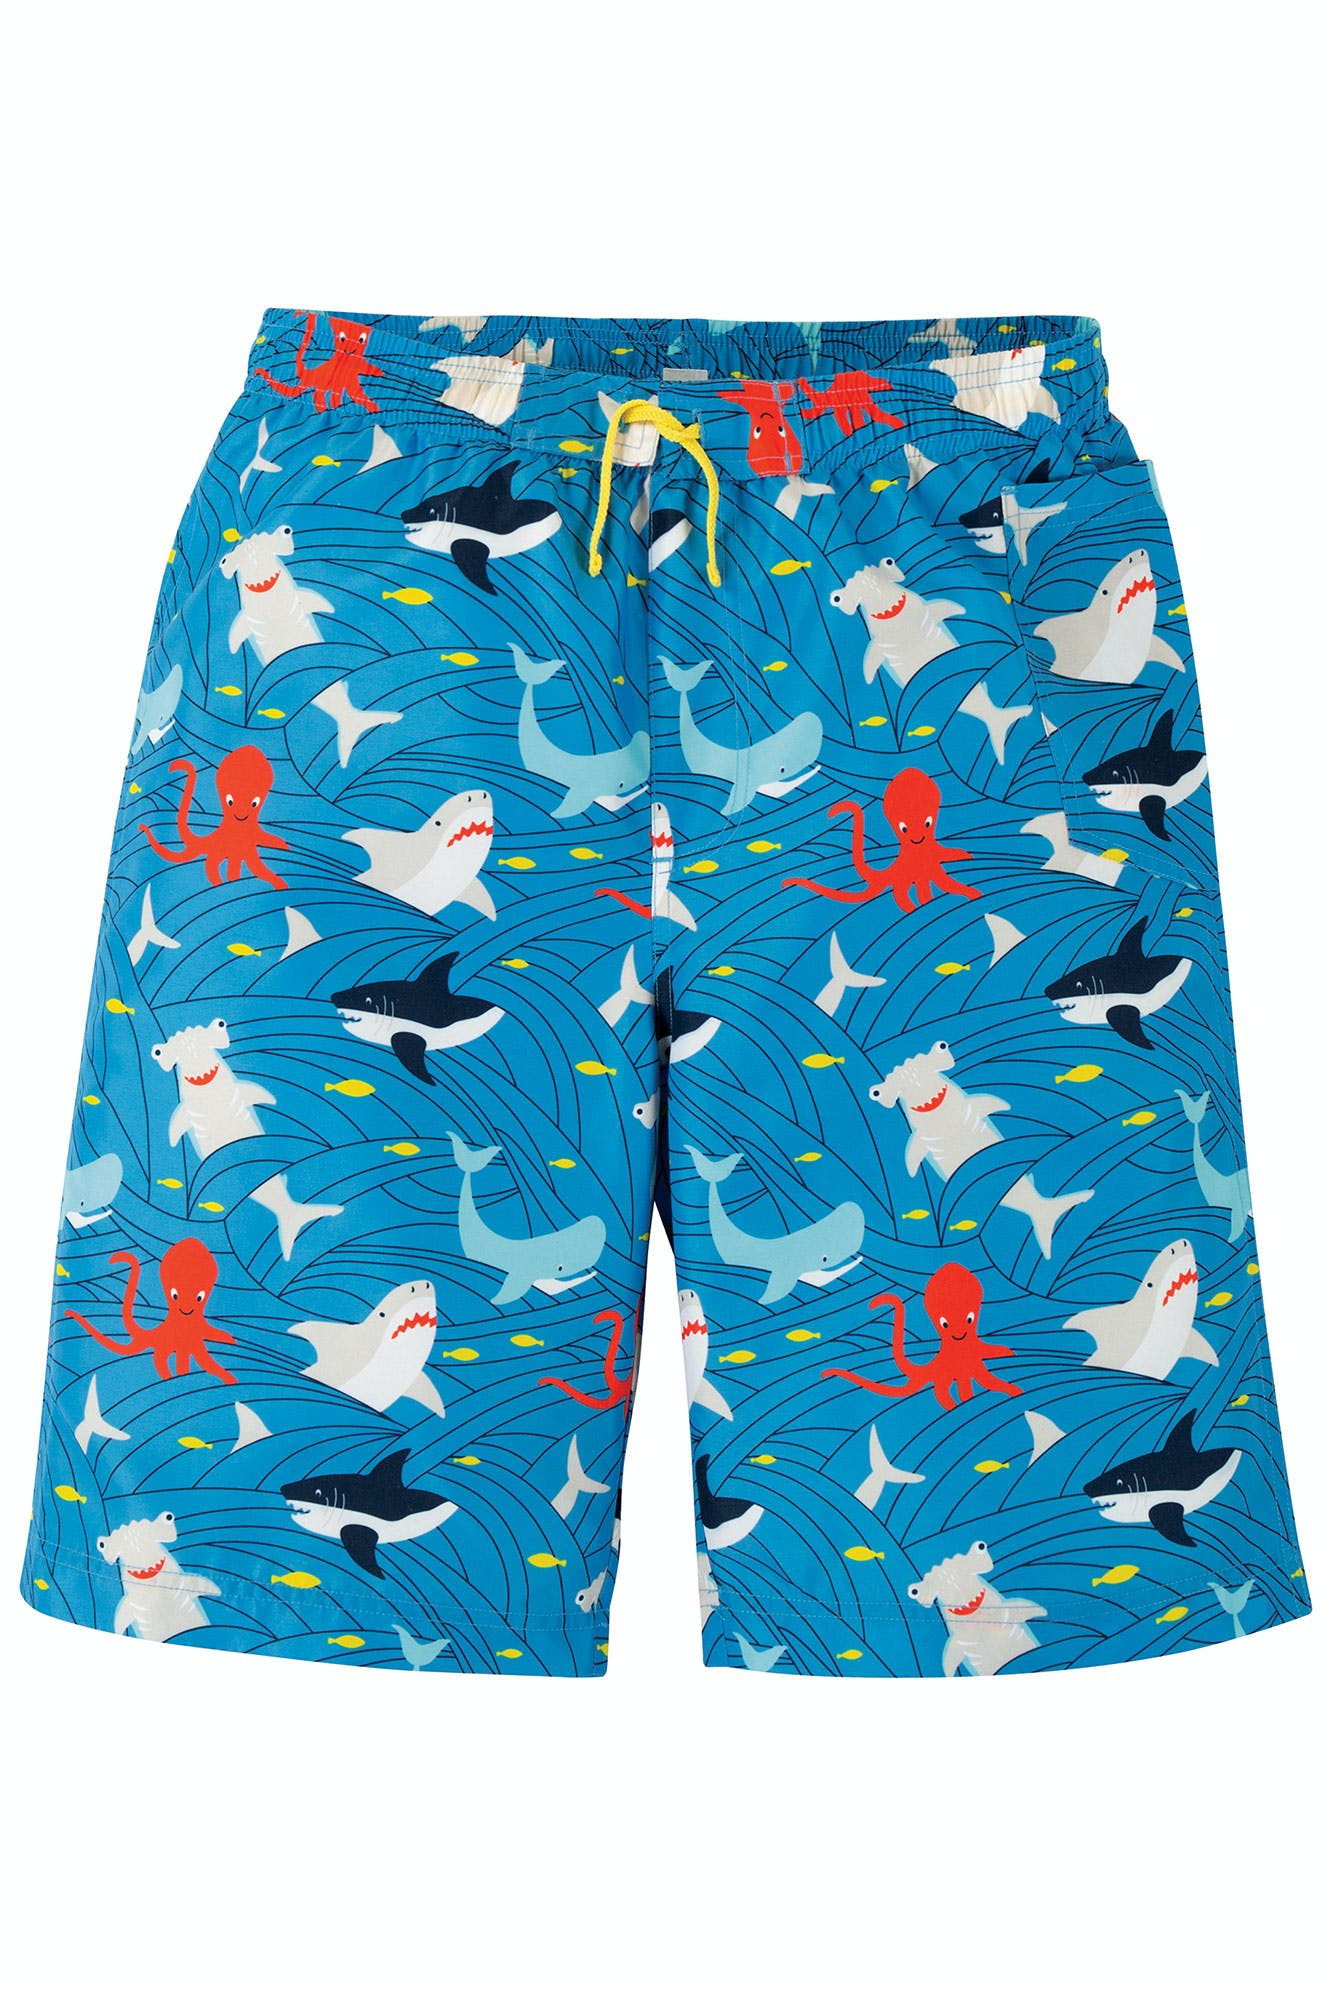 Click to view product details and reviews for Grown Ups Board Shorts.